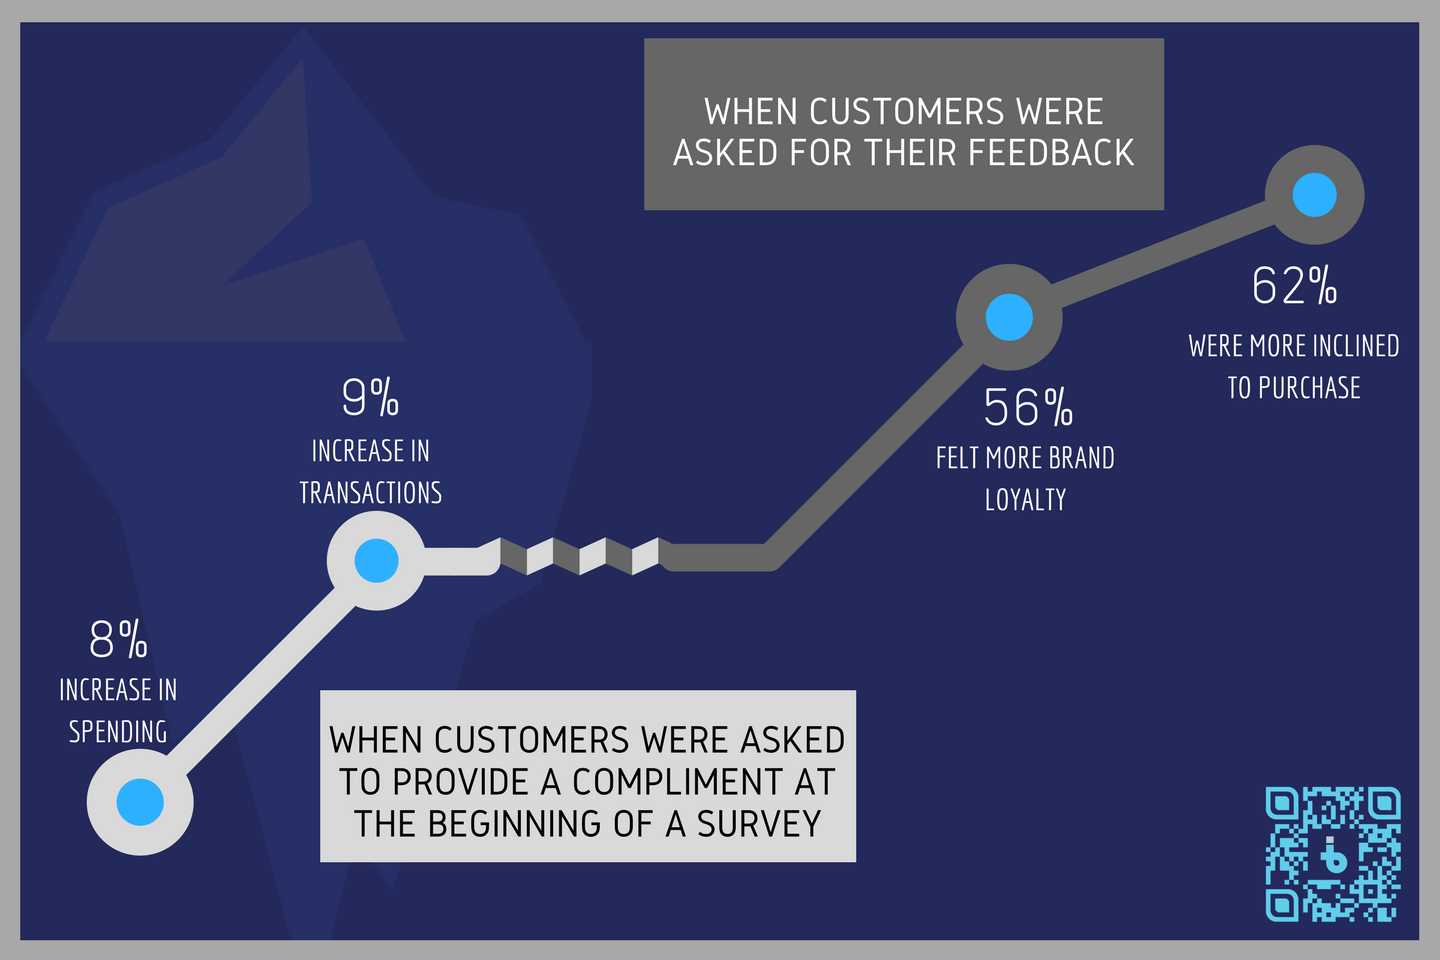 Collecting Feedback Matters